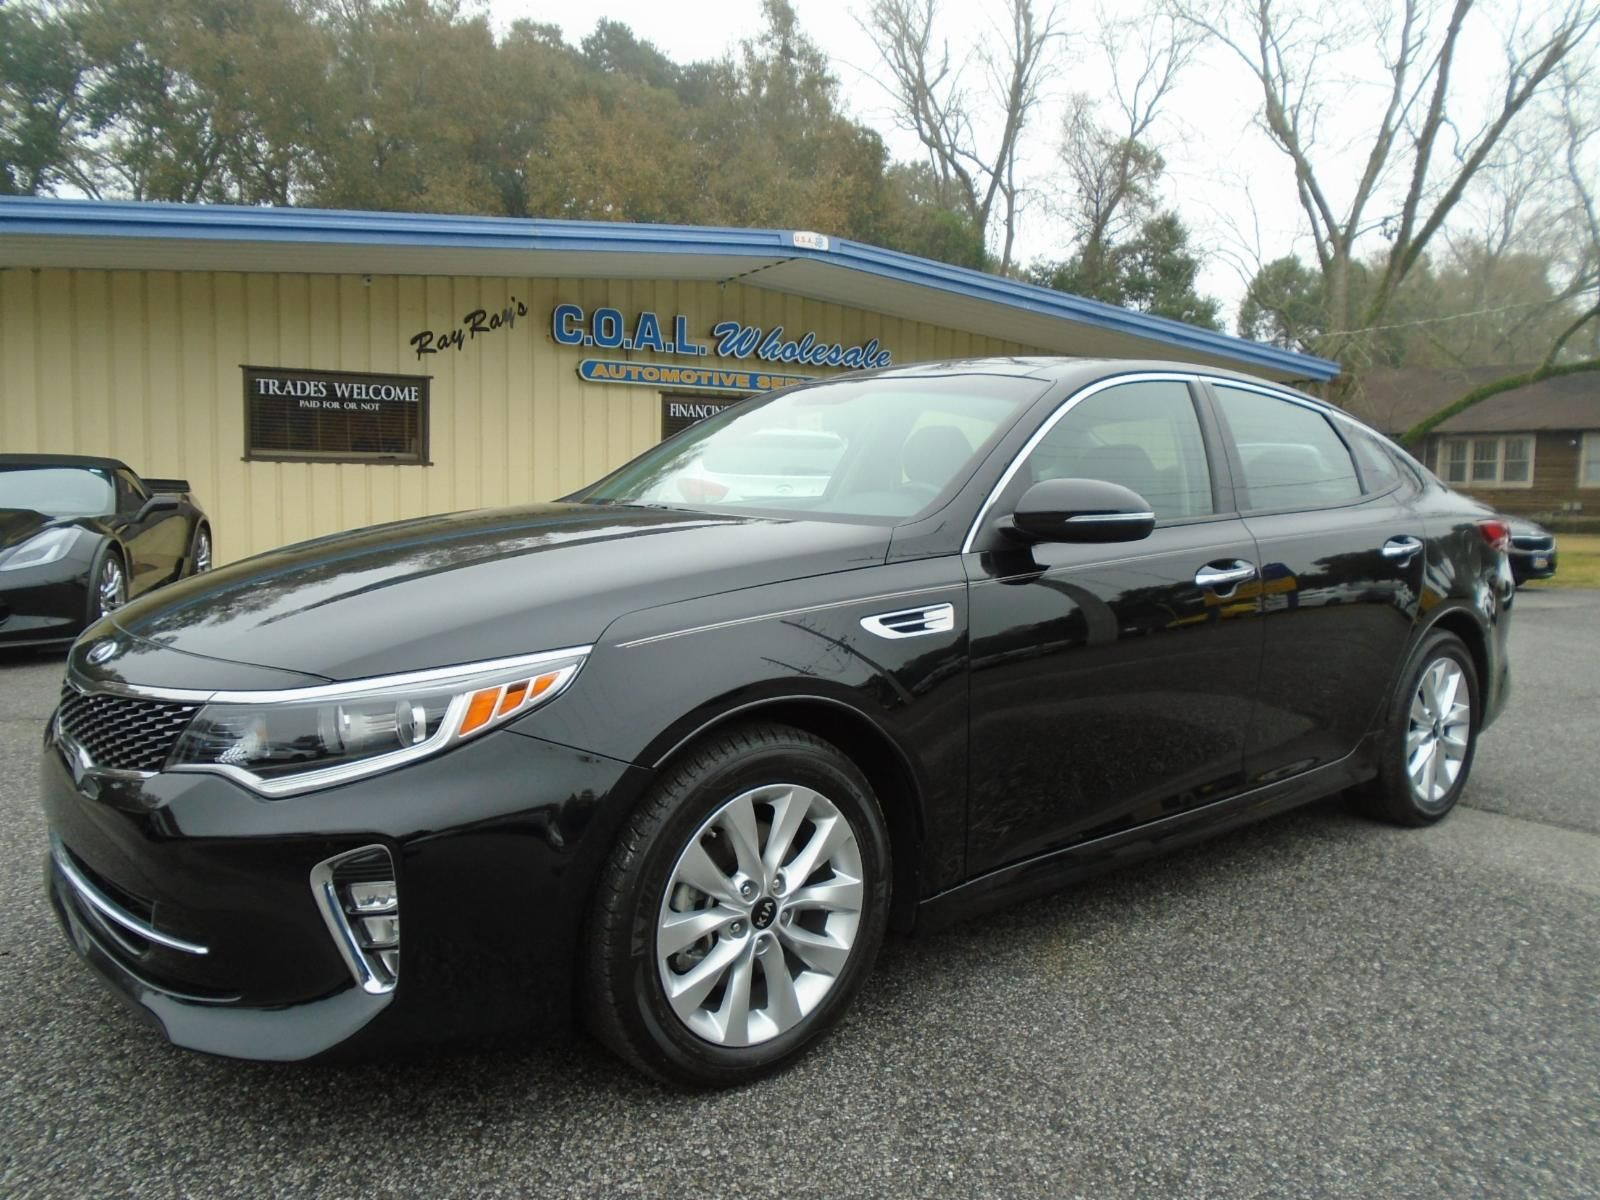 2018 Kia Optima . Lot 999186821018 Vin 5XXGT4L35JG246612